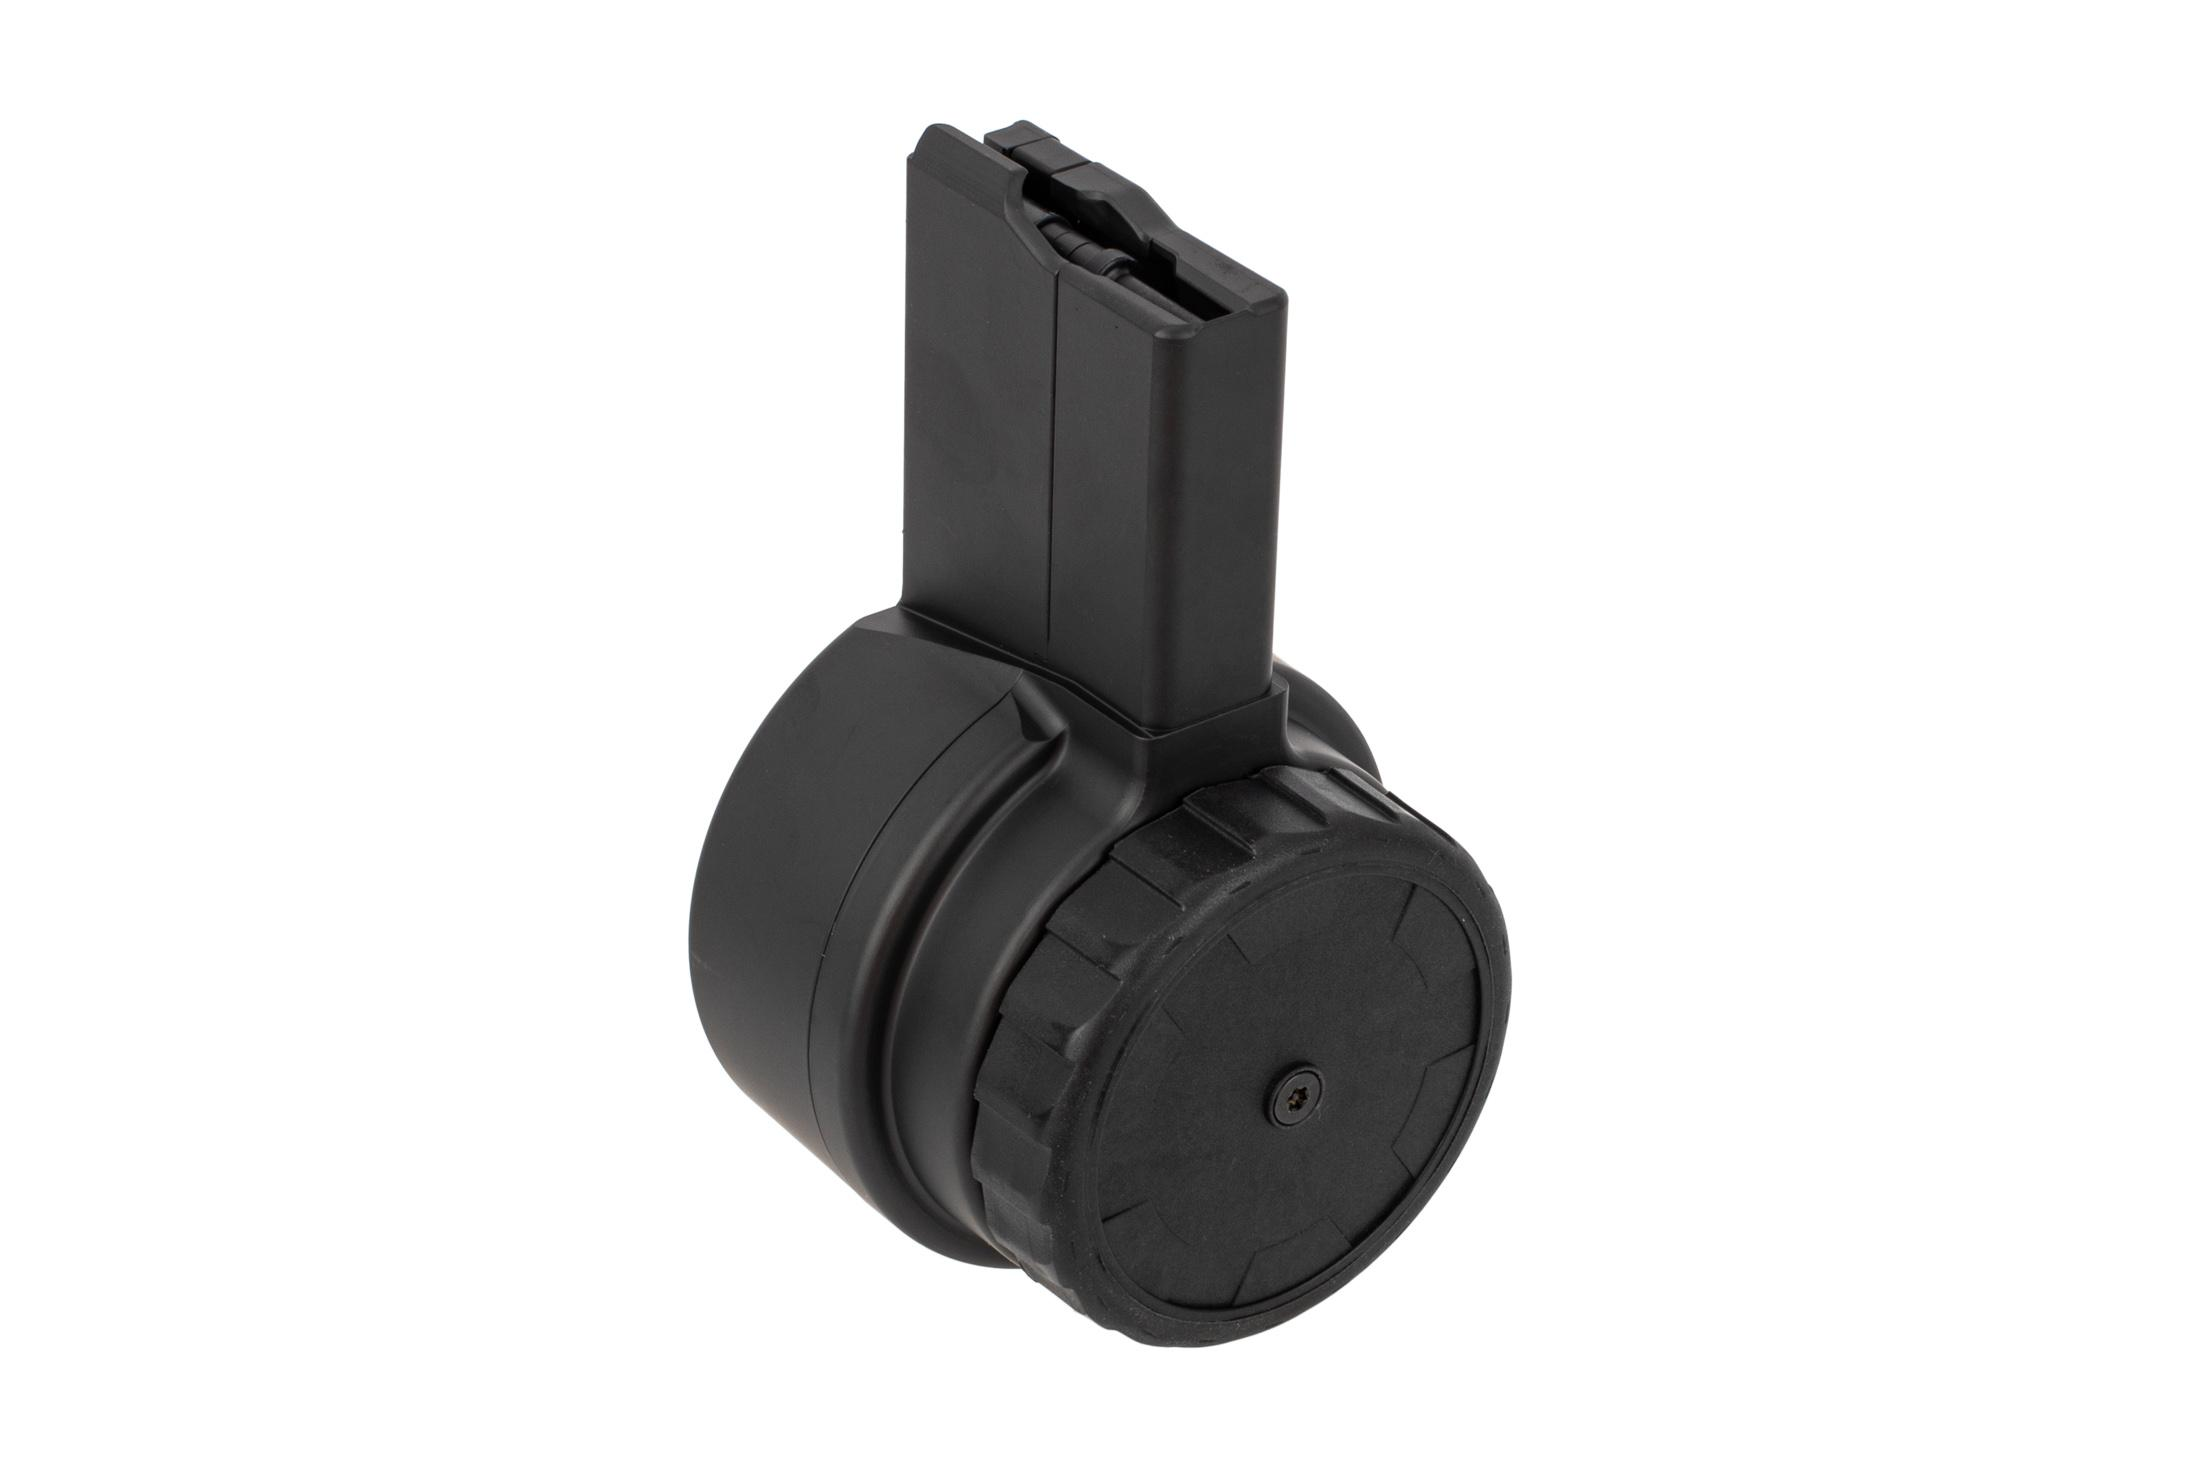 X Products 50rd AR-15 drum magazine with black finish